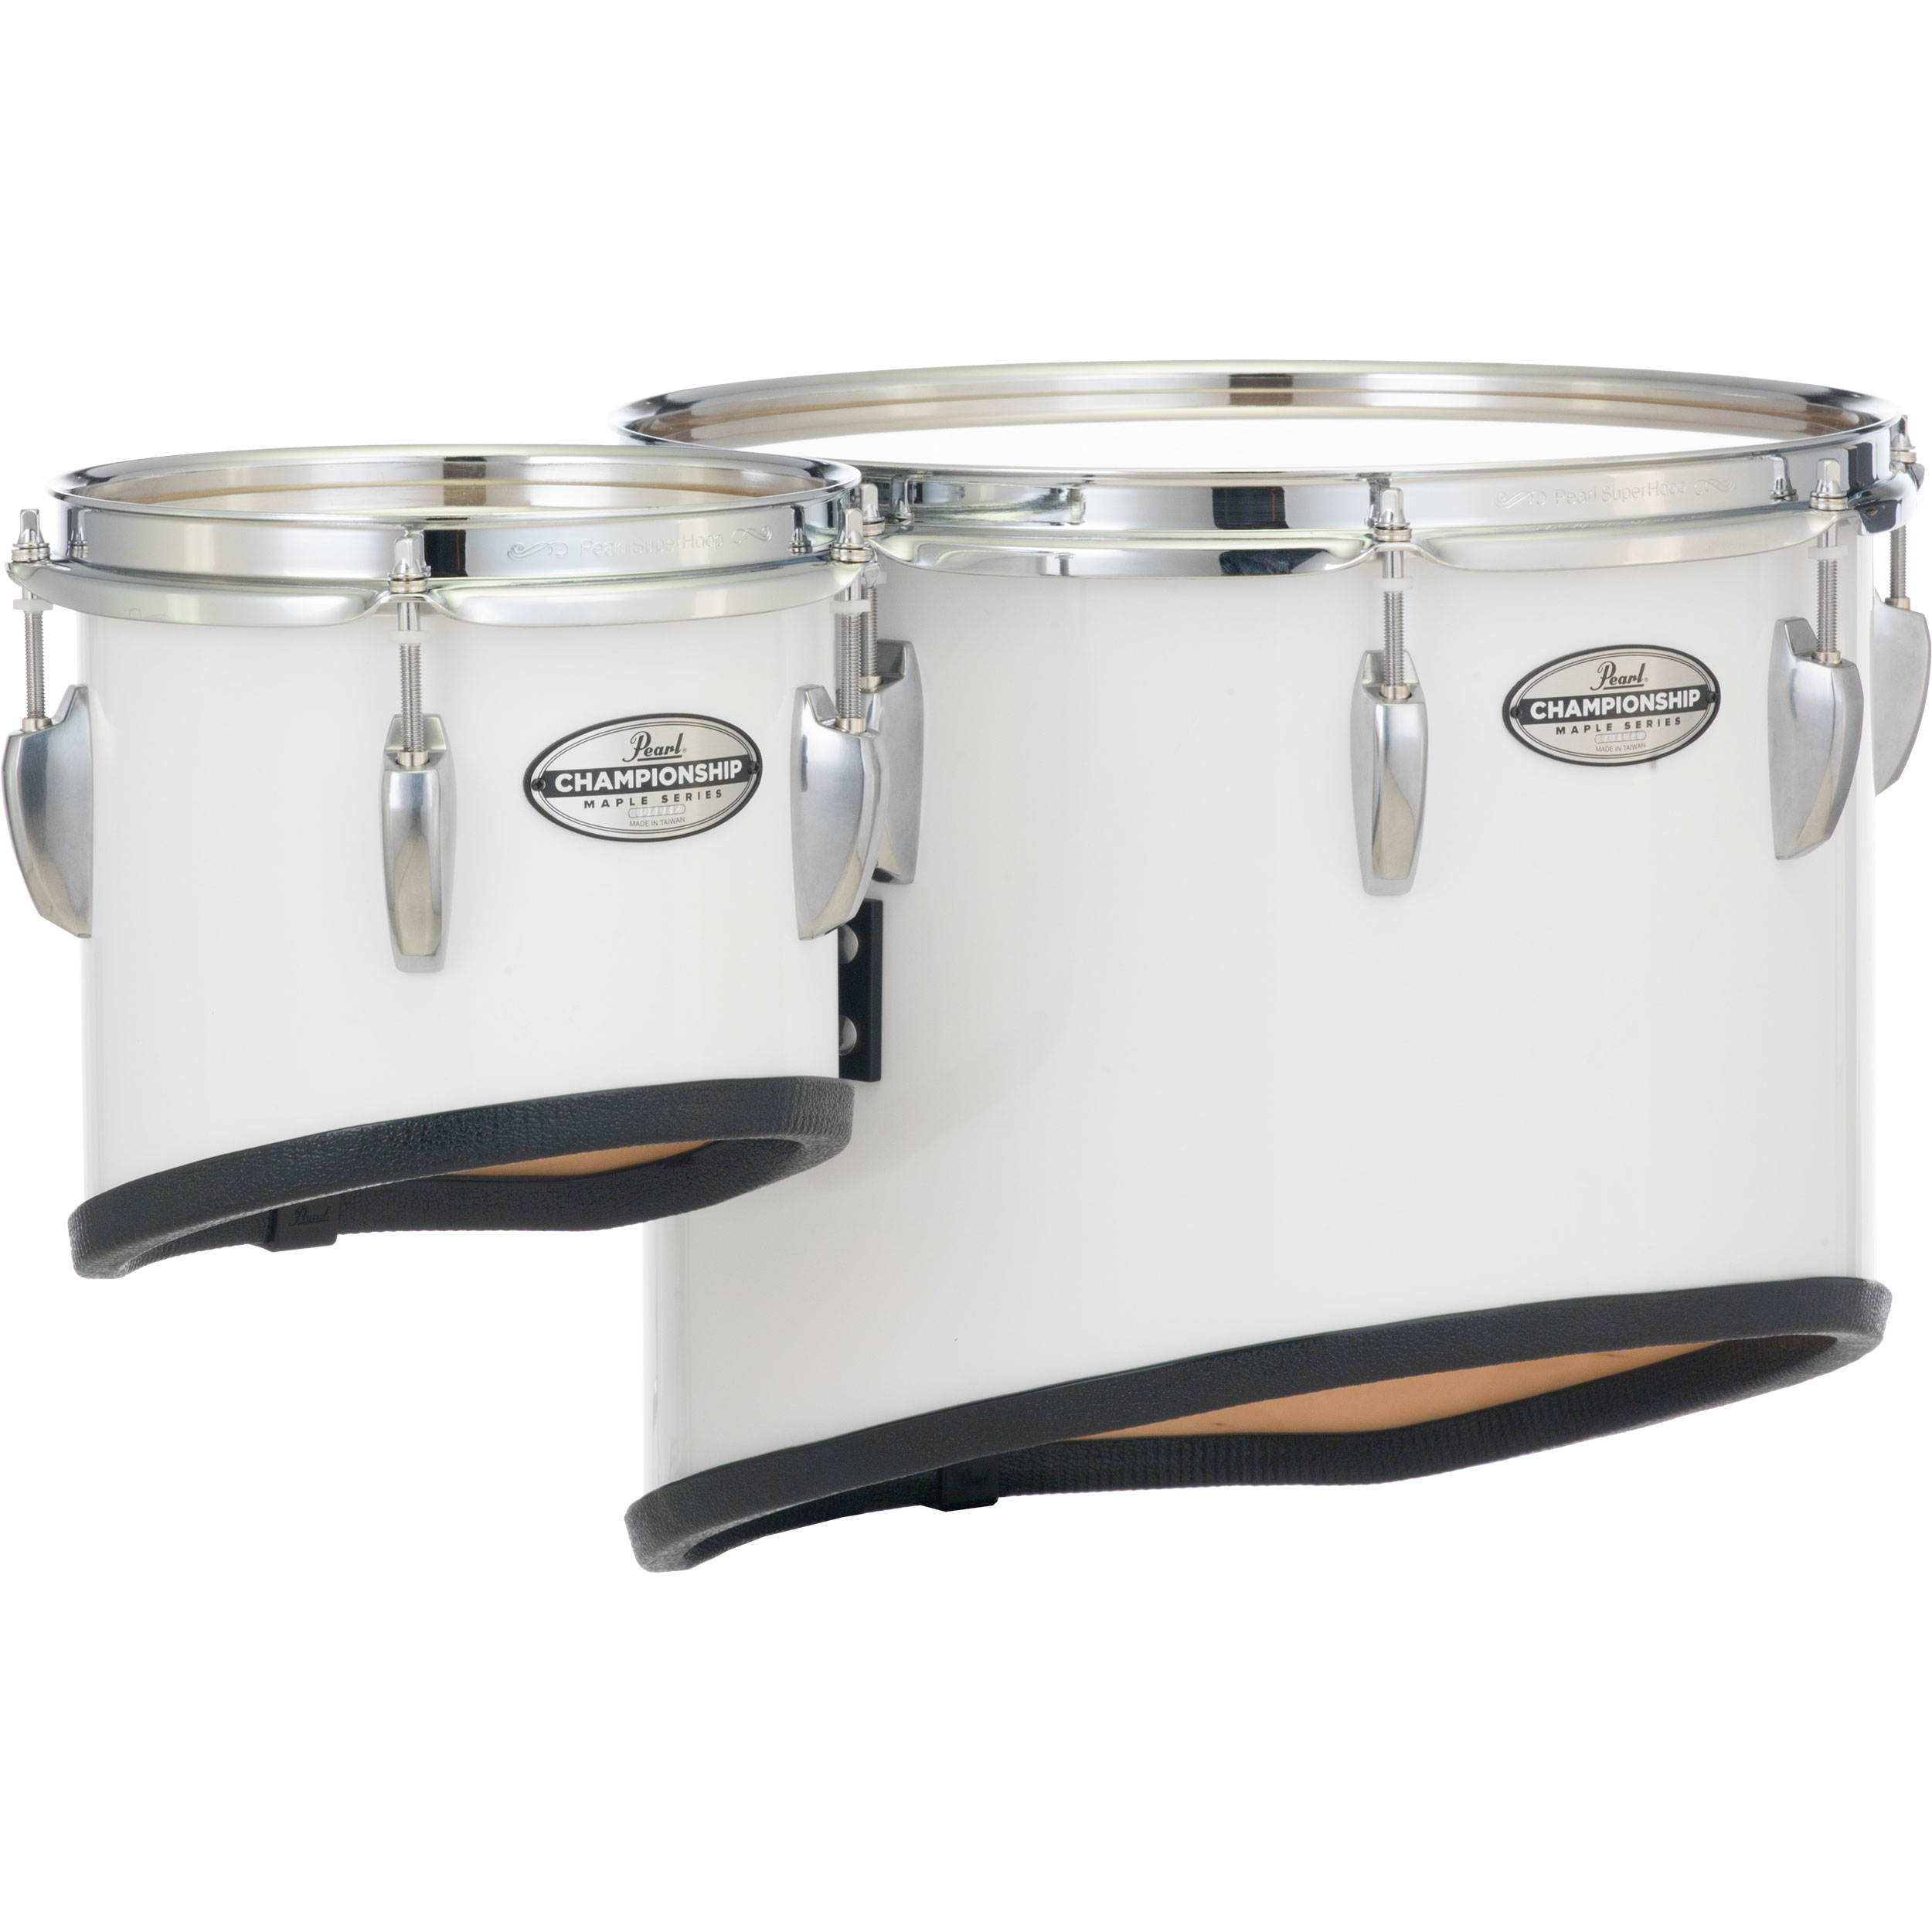 "Pearl 14"" x 13"" Championship Maple Sonic Cut Single Tenor with Mounts for CXS1 Carrier Aluminum Hardware (Specify Finish)"